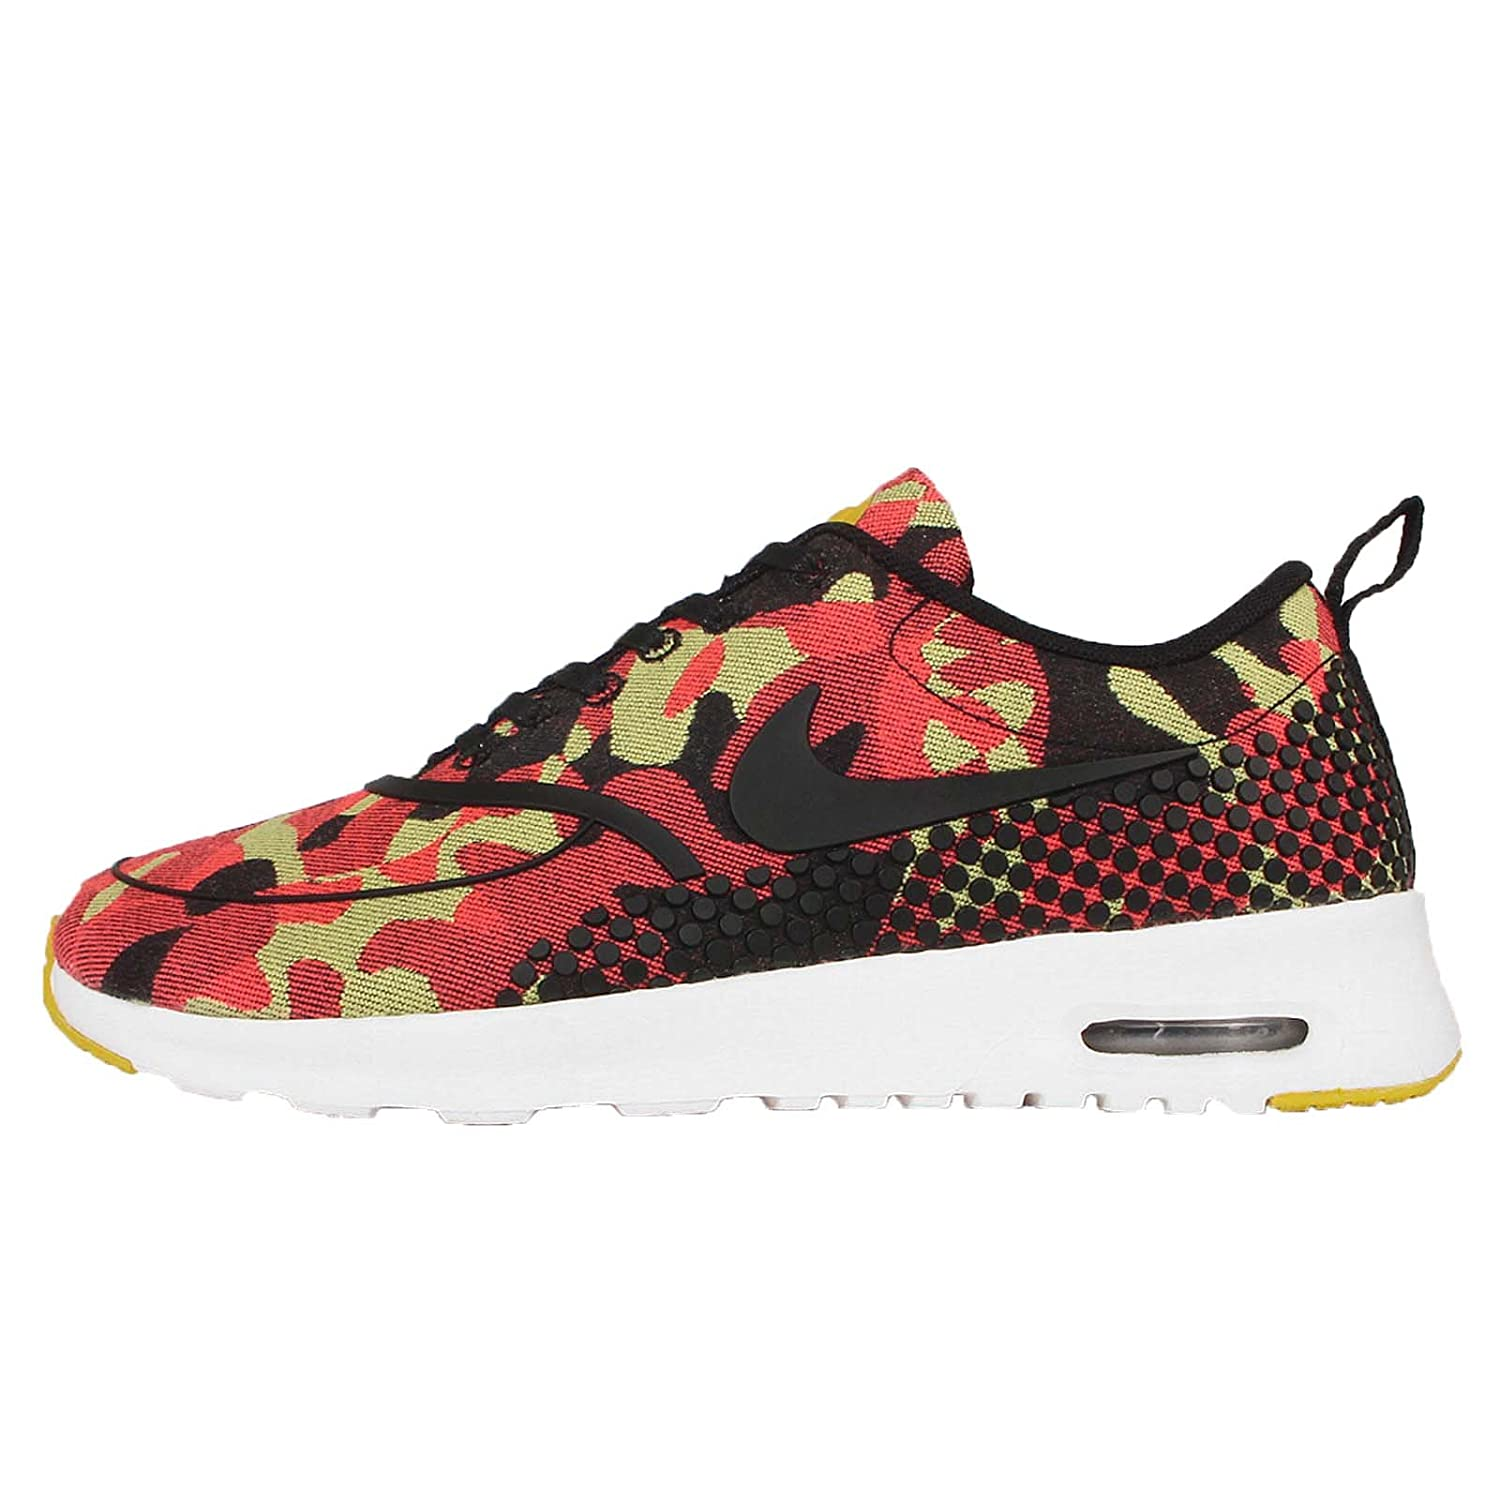 cheap for discount c04a5 4cefc Nike Women s Air Max Thea JCRD PRM Running Shoes  Amazon.co.uk  Shoes   Bags